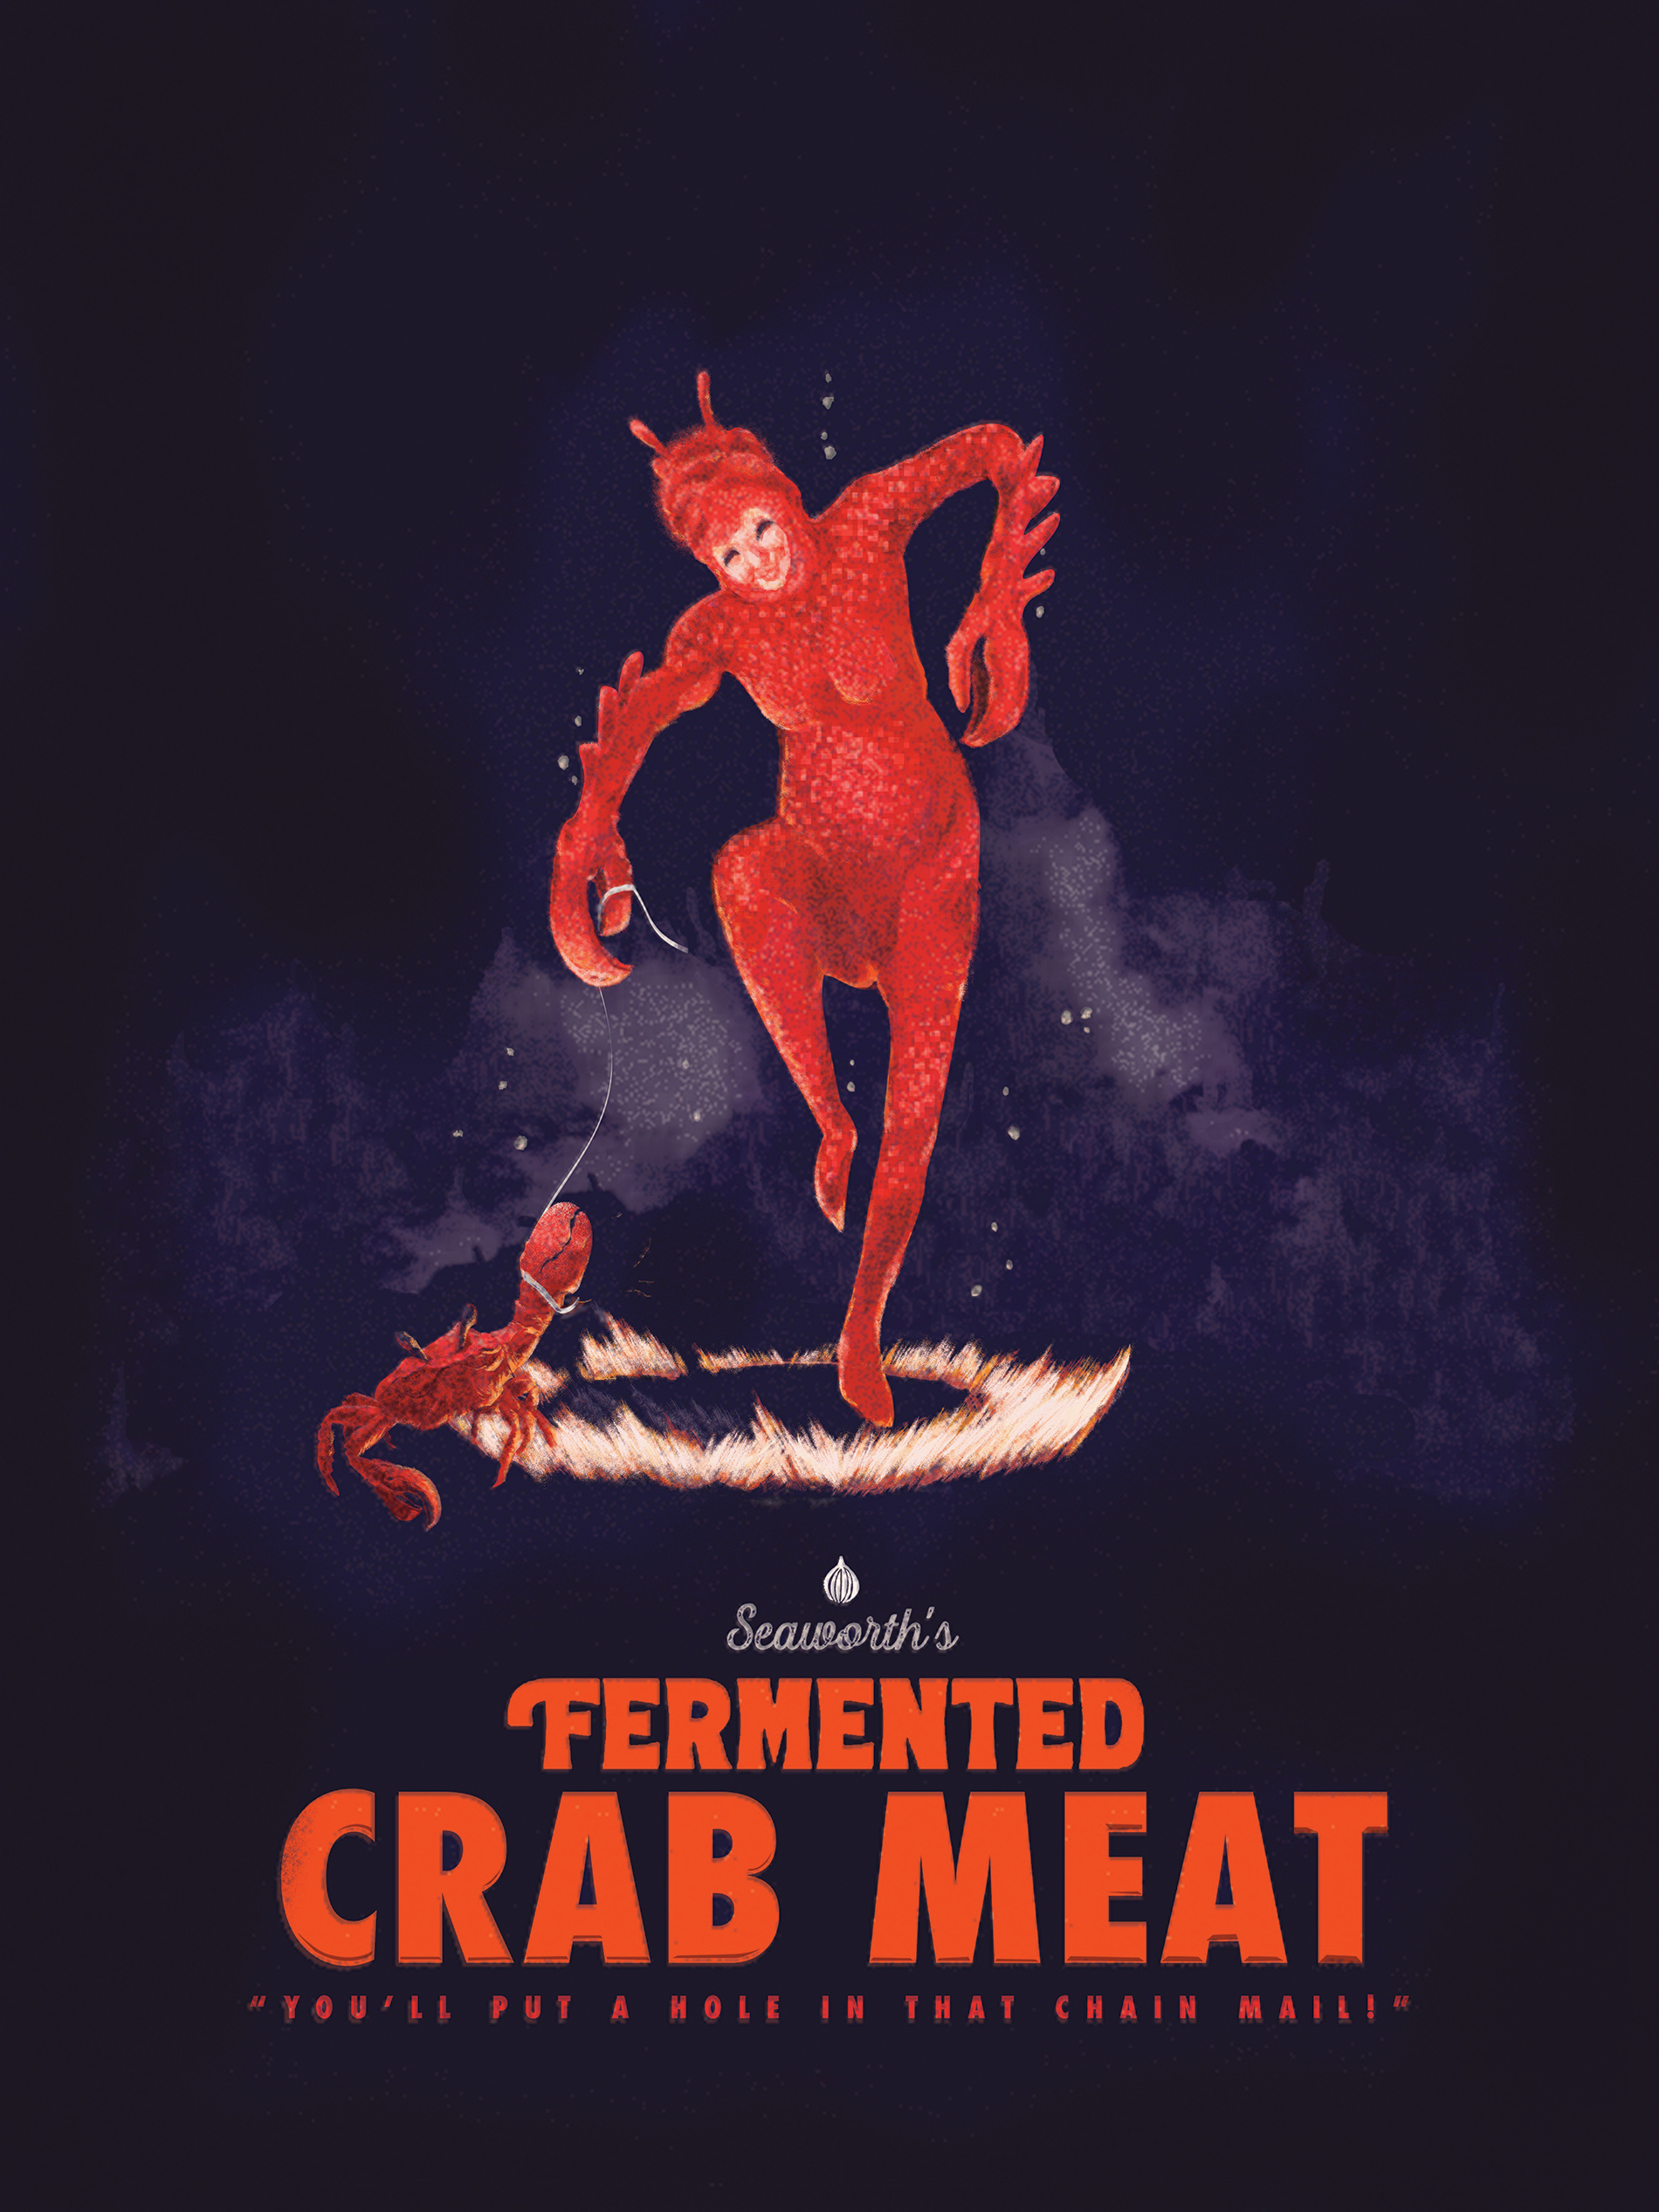 Fermented Crab Meat